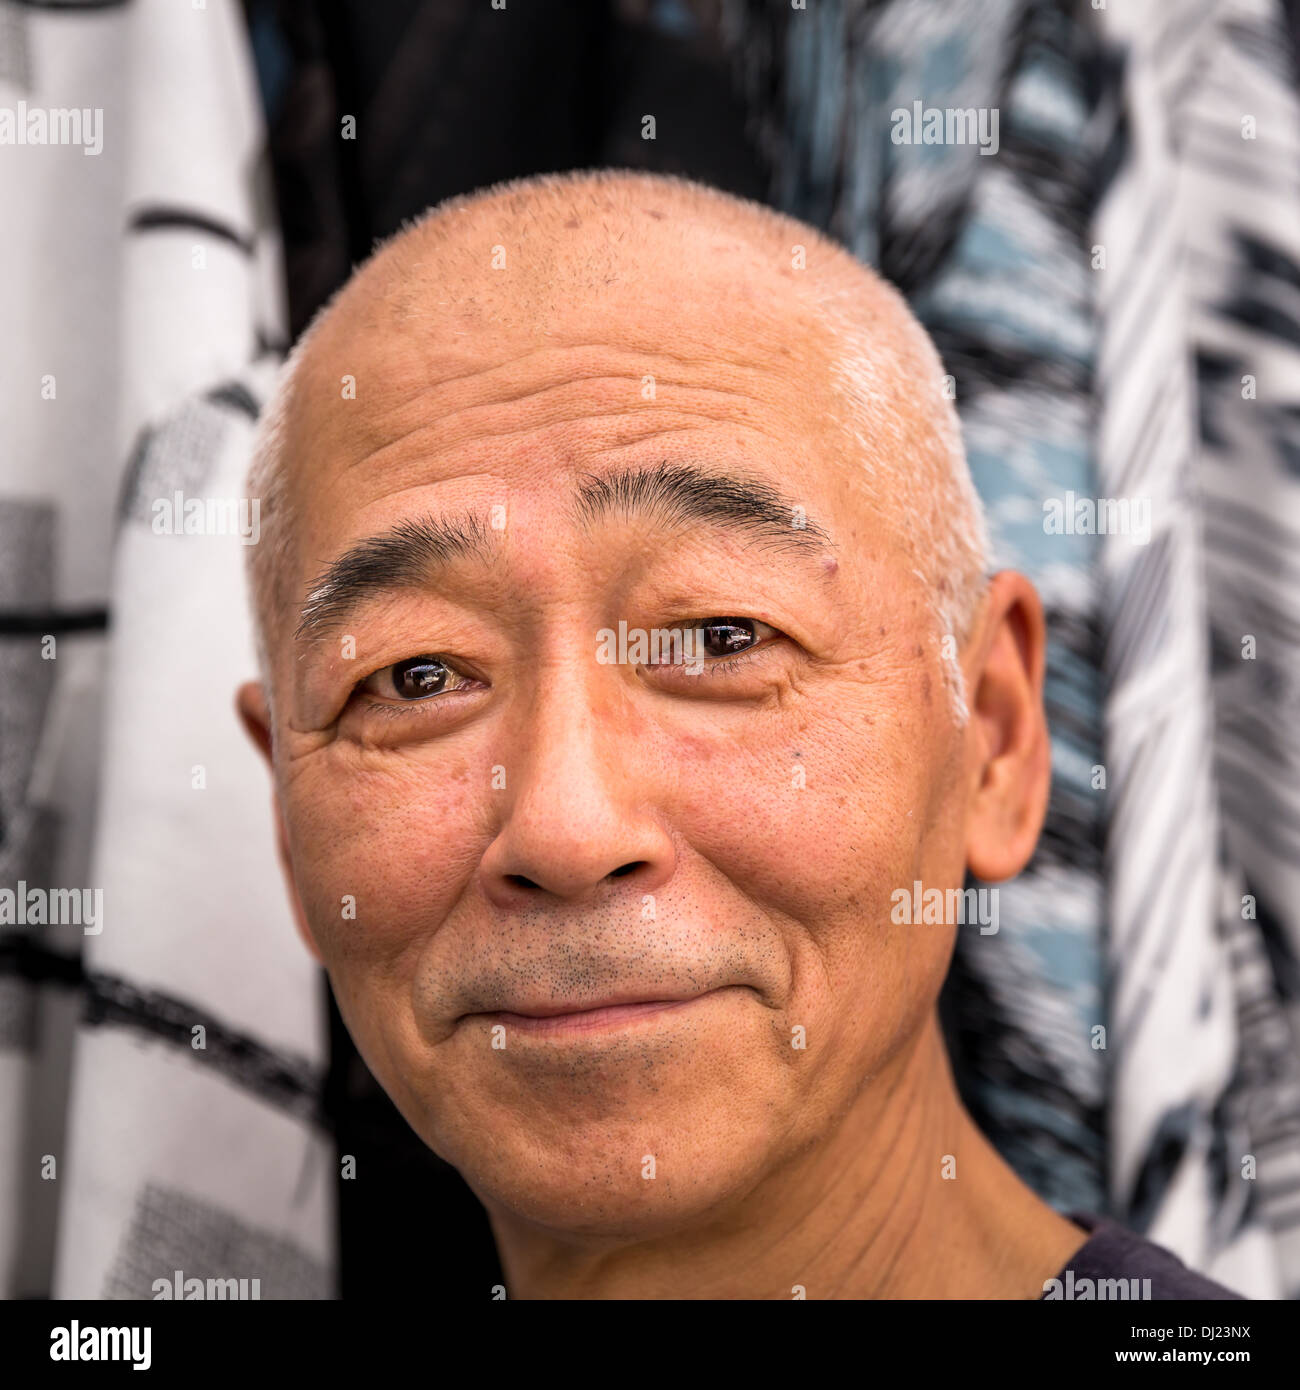 Portrait of a smiling Japanese man, Kyoto, Japan - Stock Image